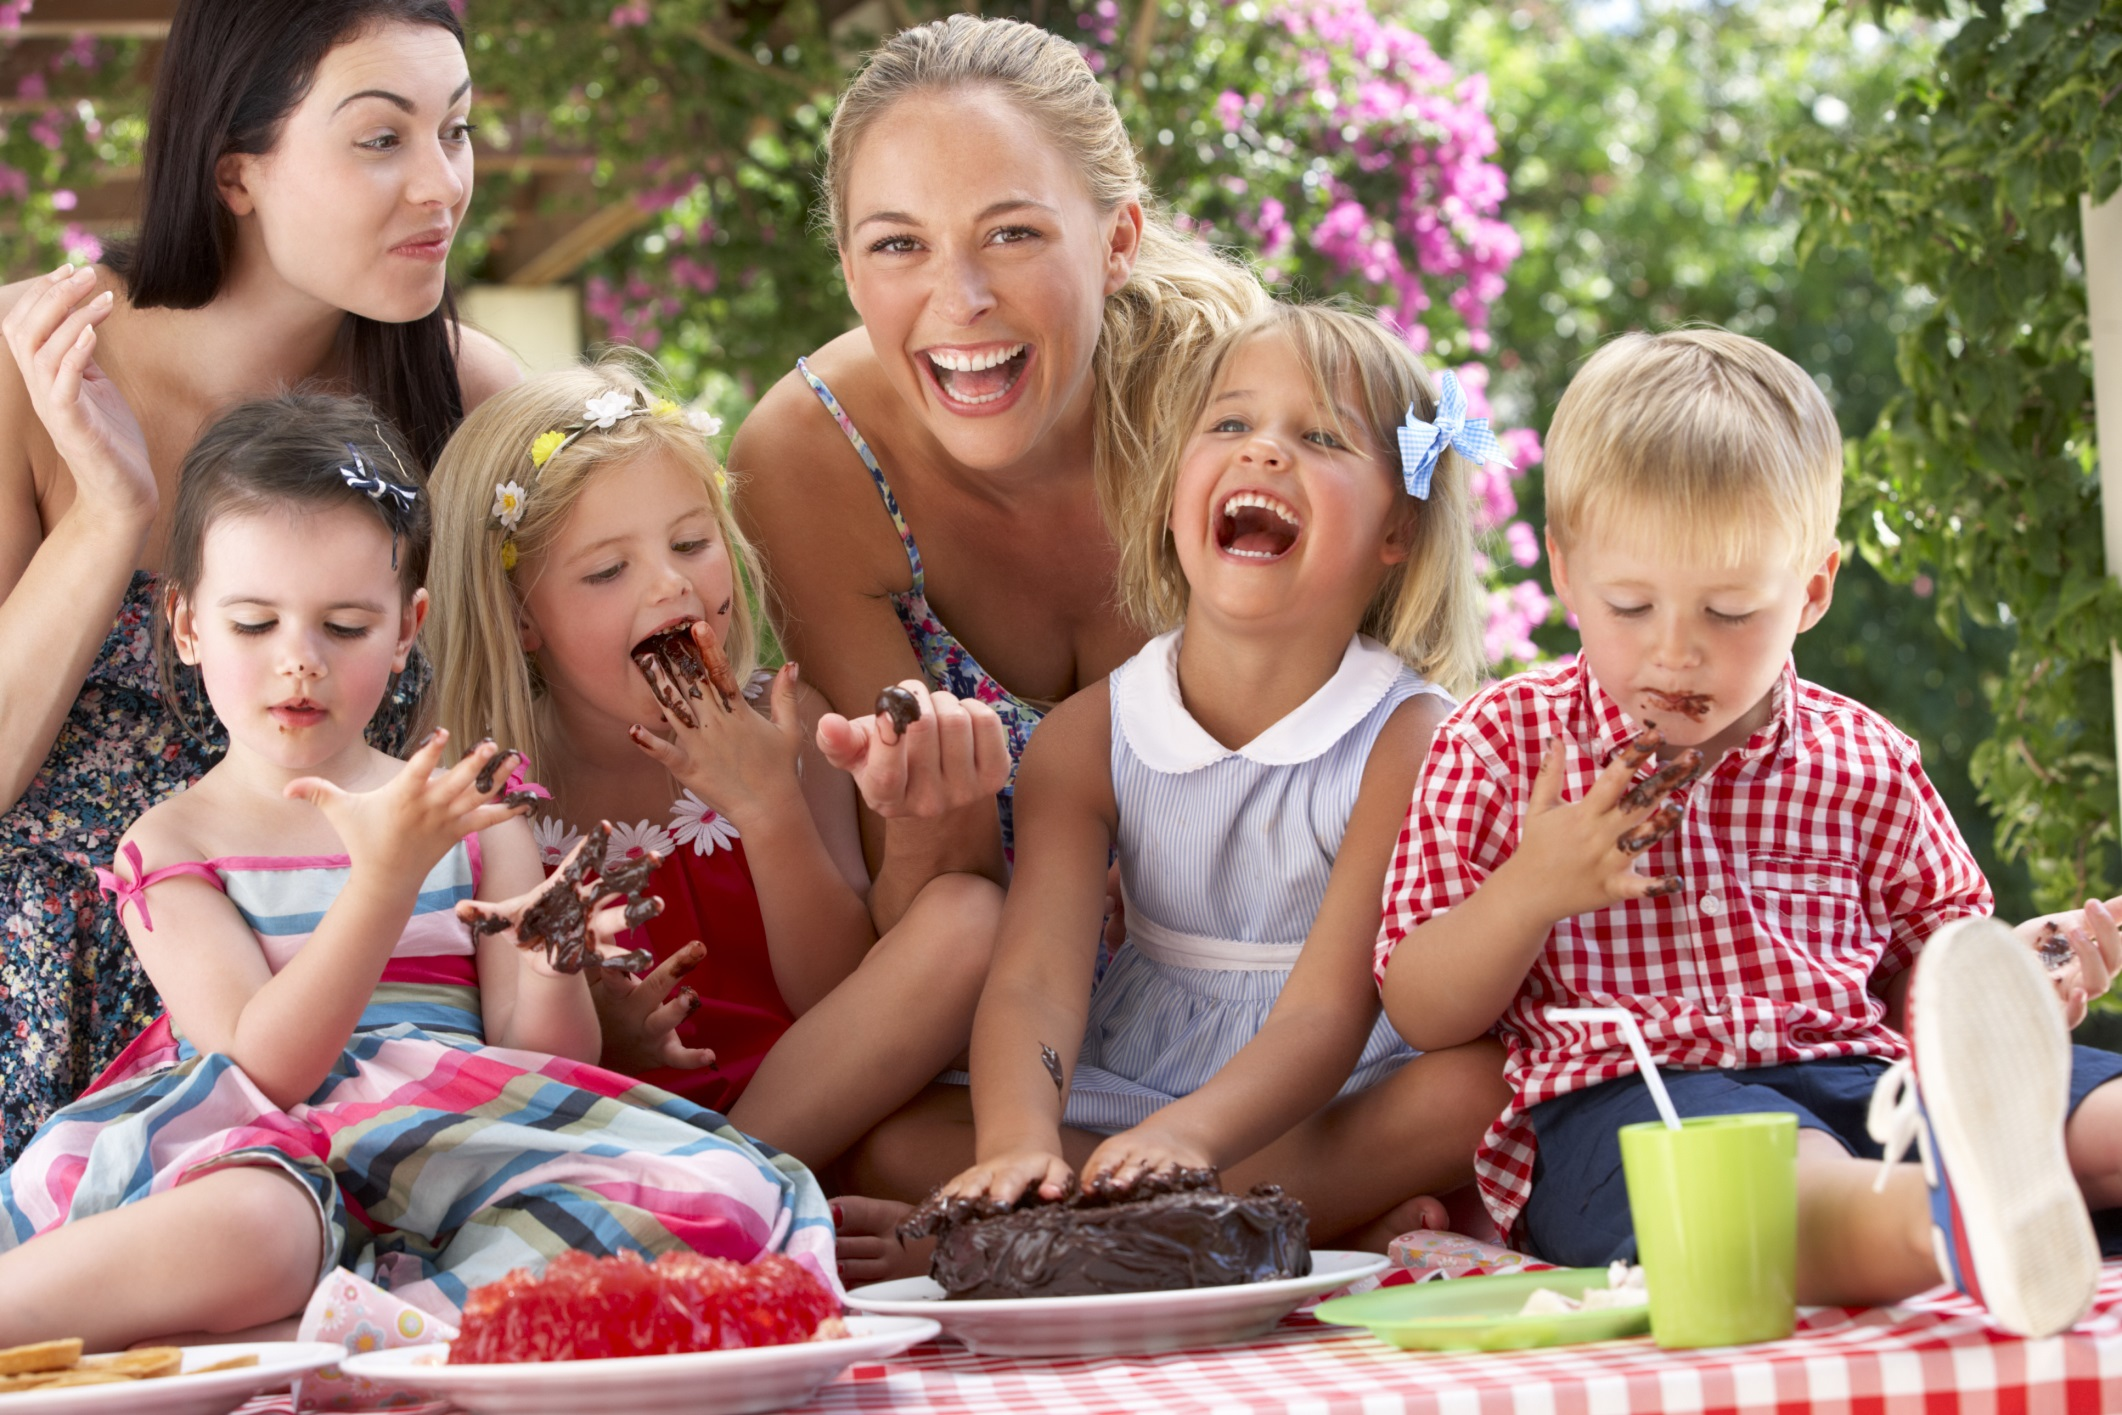 kids-moms-birthday-party